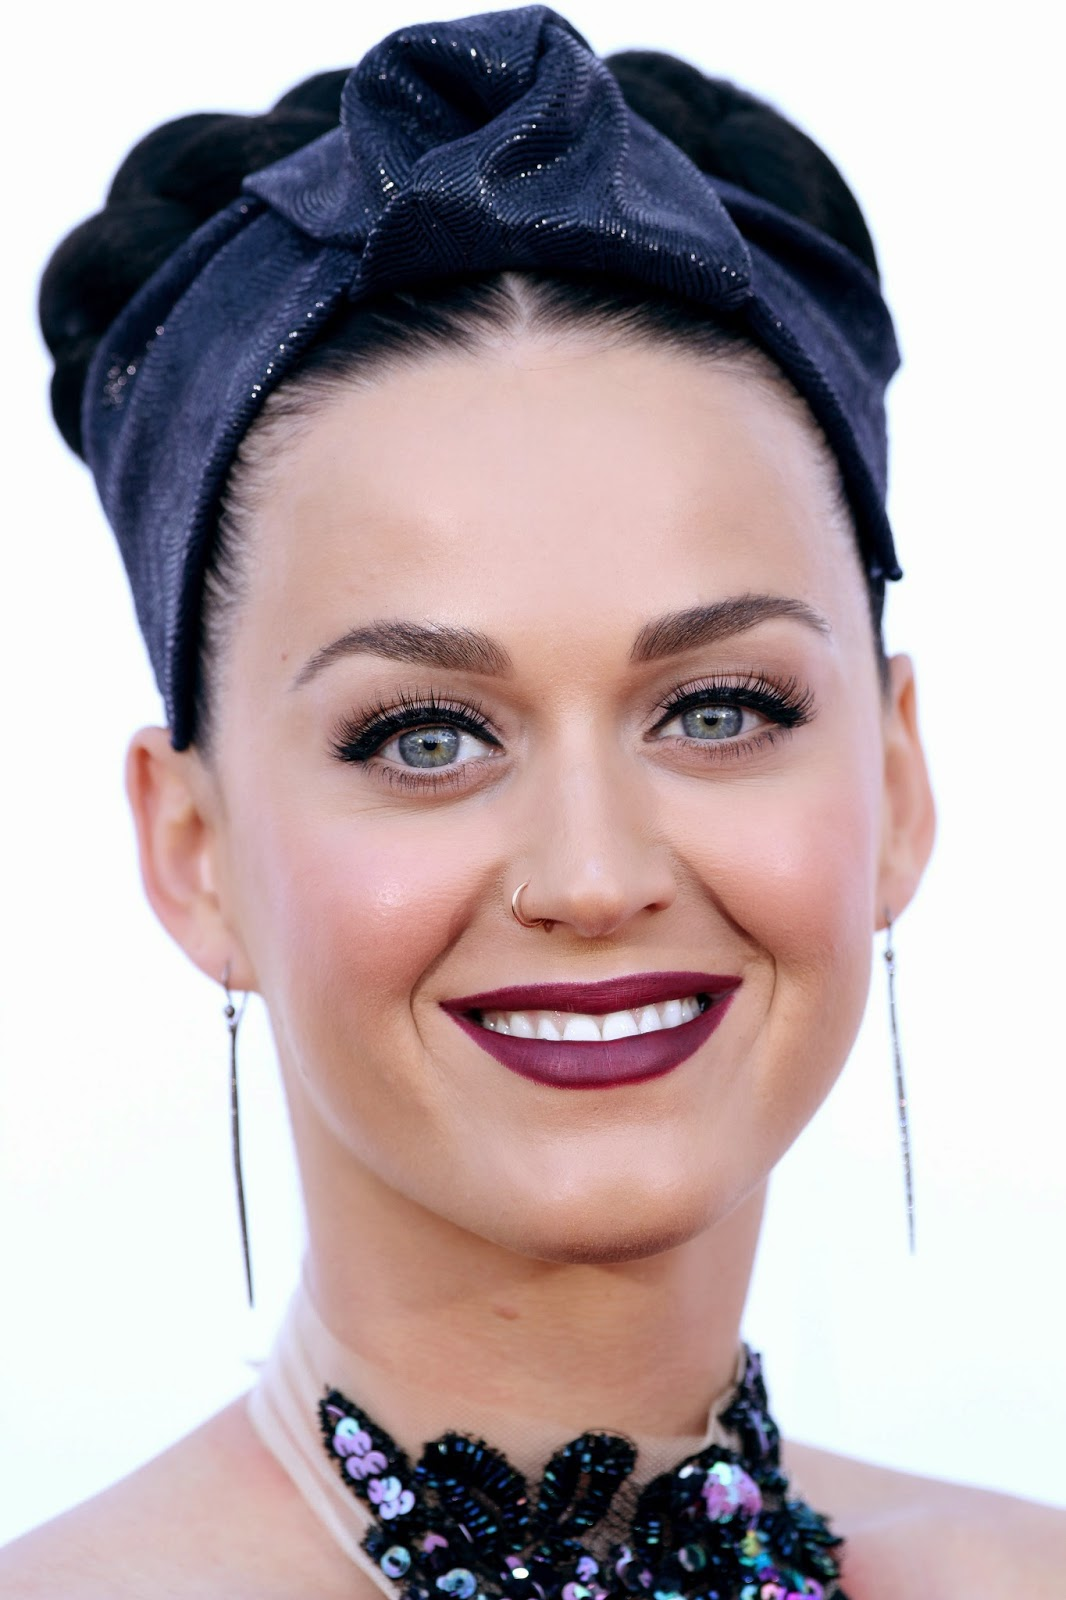 Katy Perry 2015 Styles Amp Trends